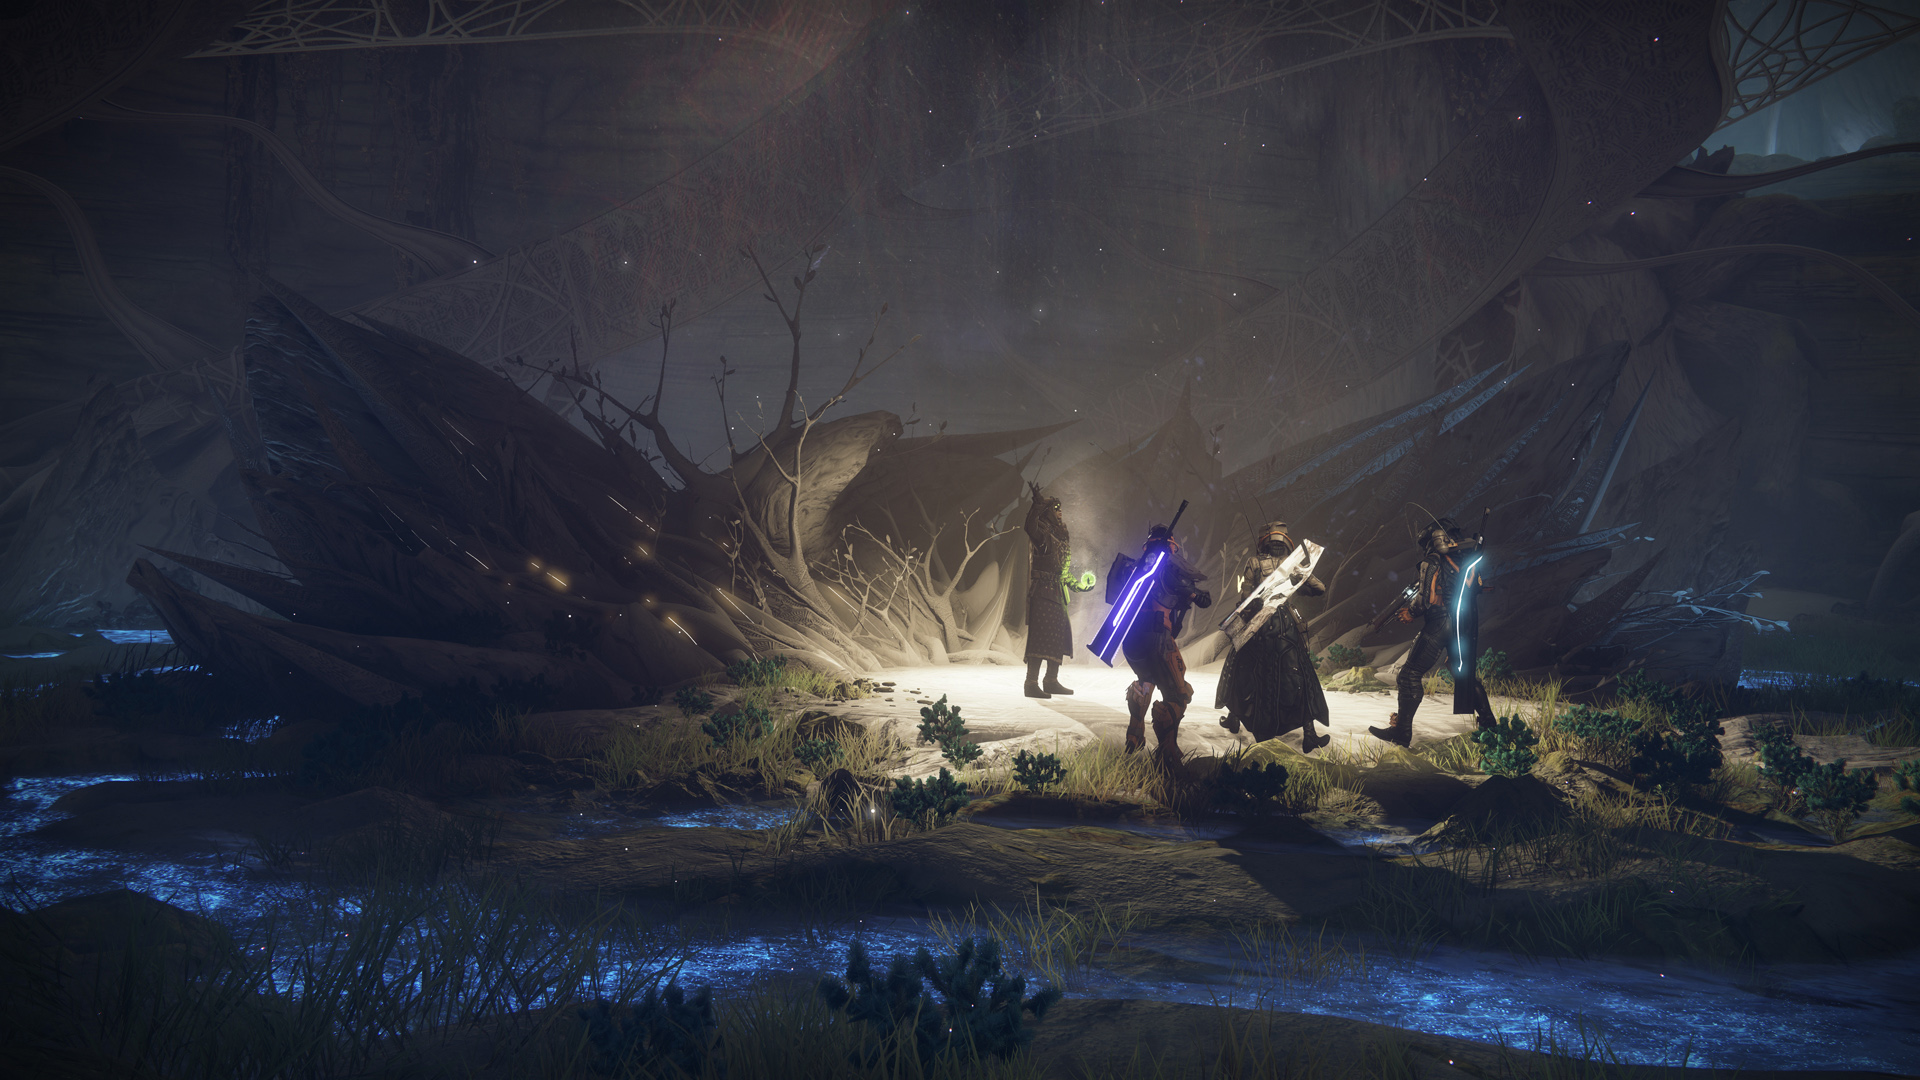 destiny 2 season of arrivals campaign walkthrough in the face of darkness